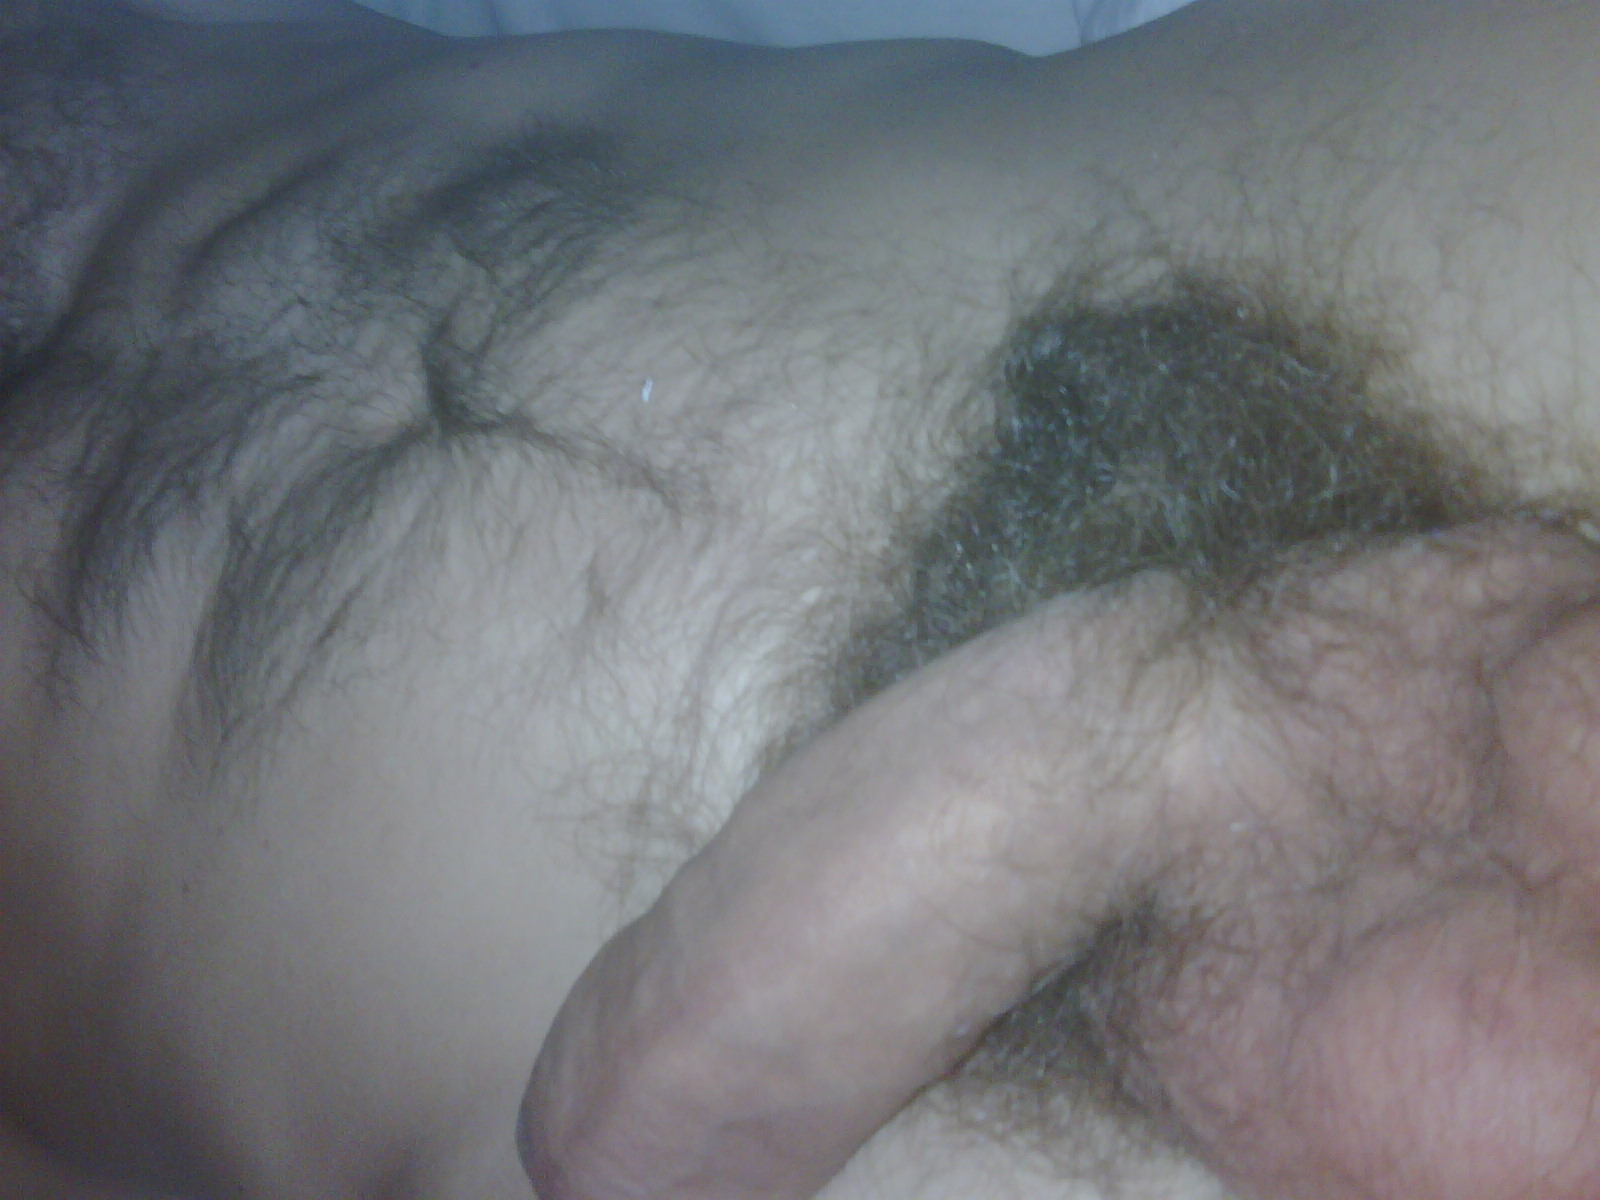 cock and body shot